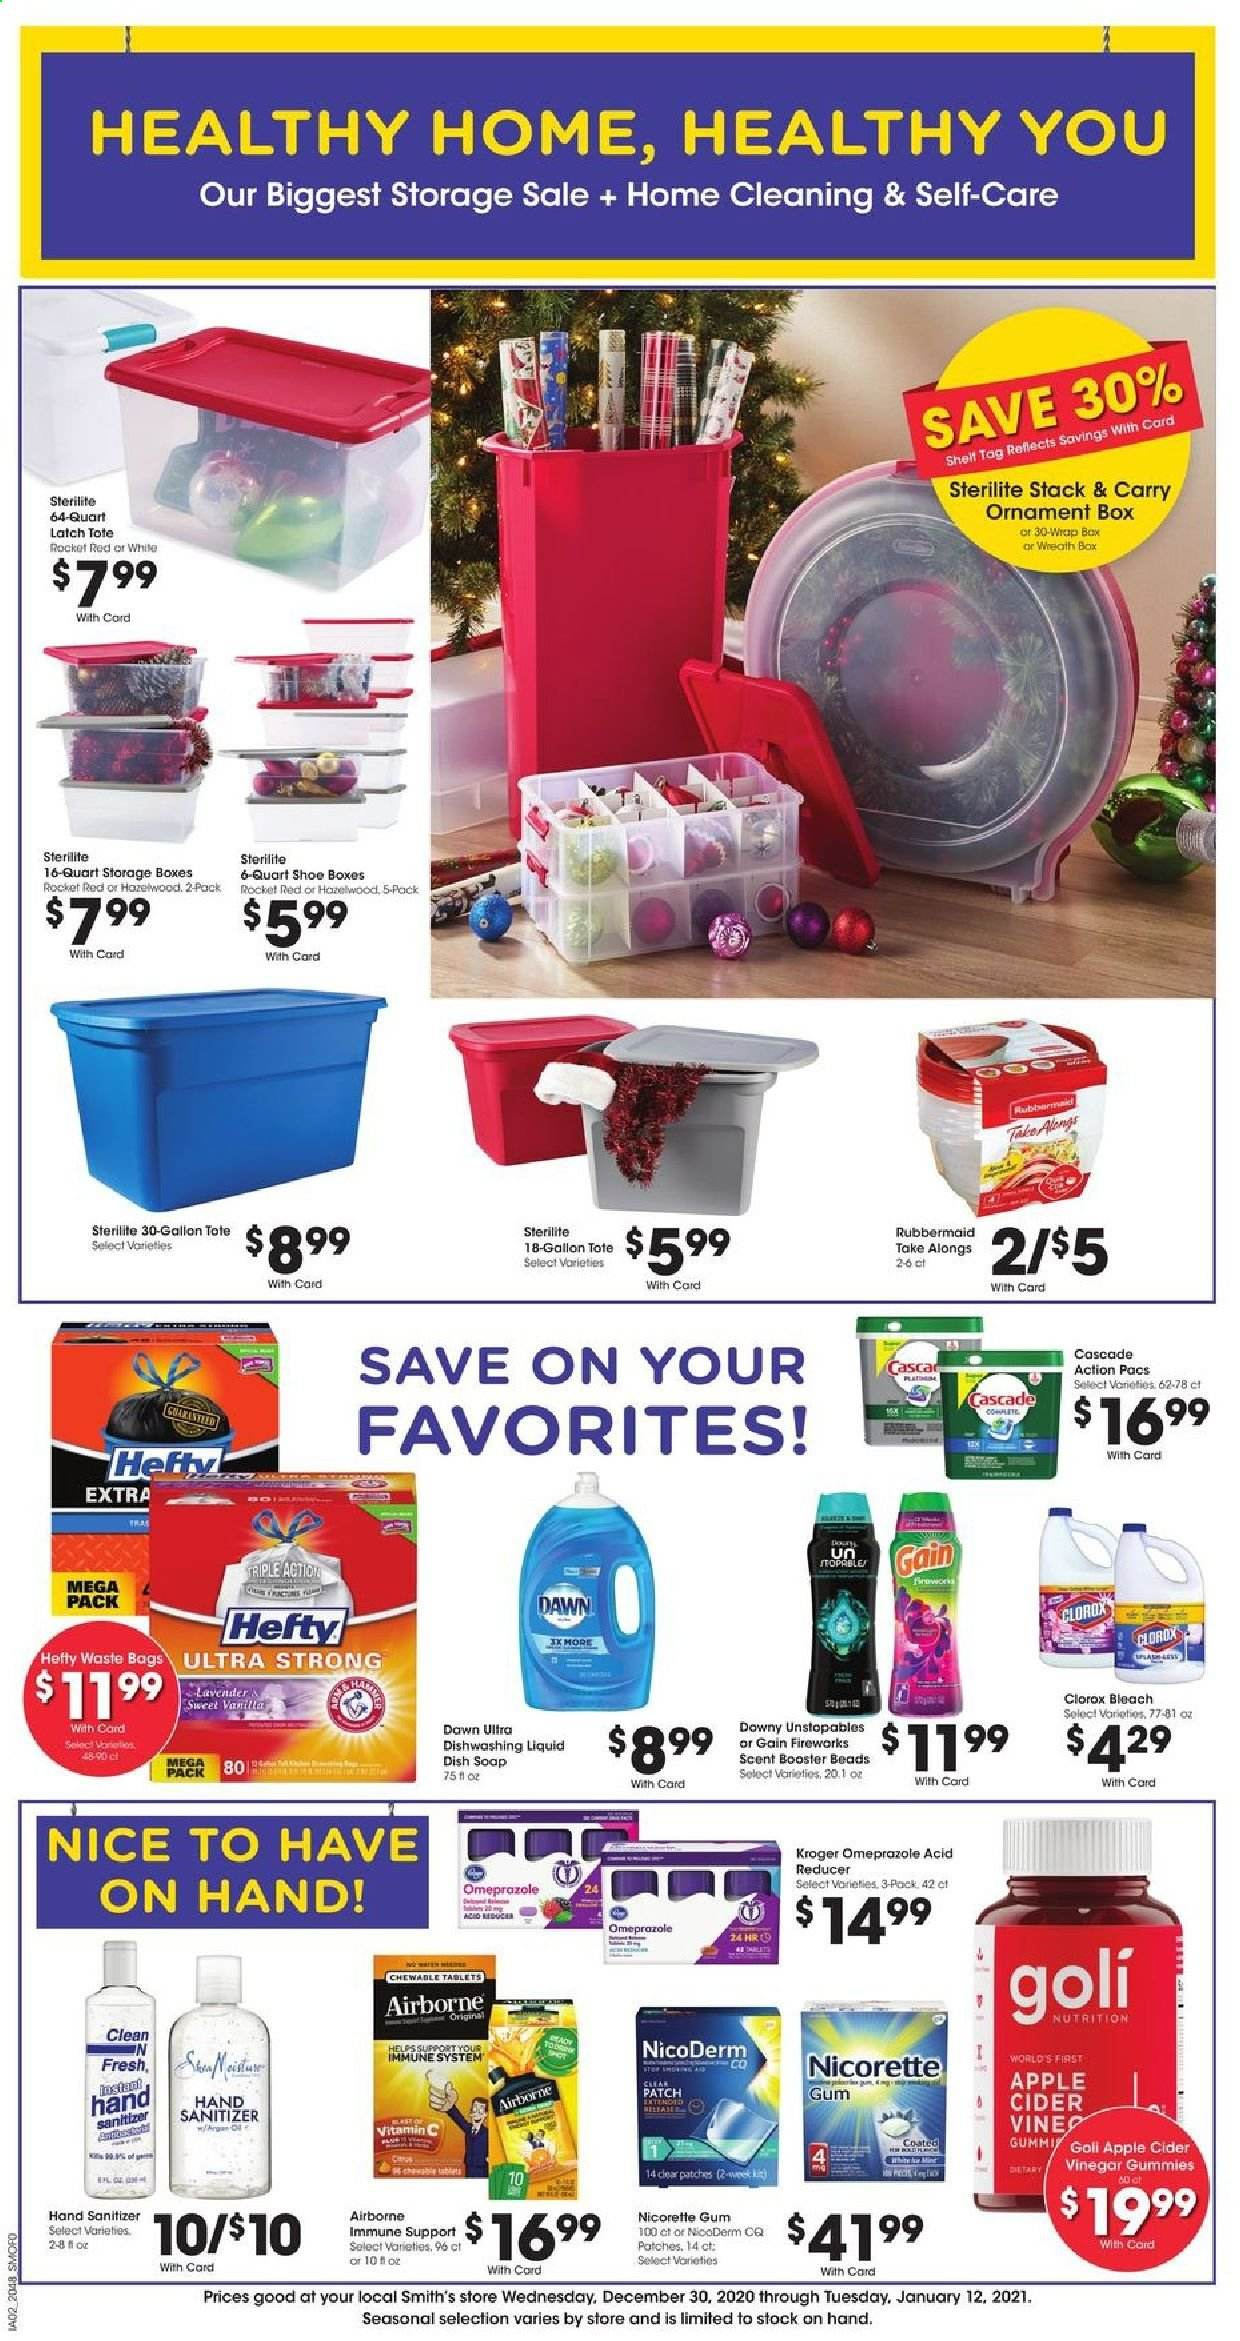 Smith's Flyer - 12.30.2020 - 01.12.2021 - Sales products - apple cider, bag, cascade, Downy, Gain, NicoDerm, Nicorette, rocket, table, Unstopables, vinegar, vitamin c, wreath, Hefty, ornament, storage box, tote, gum, dishwashing liquid, hand sanitizer. Page 1.